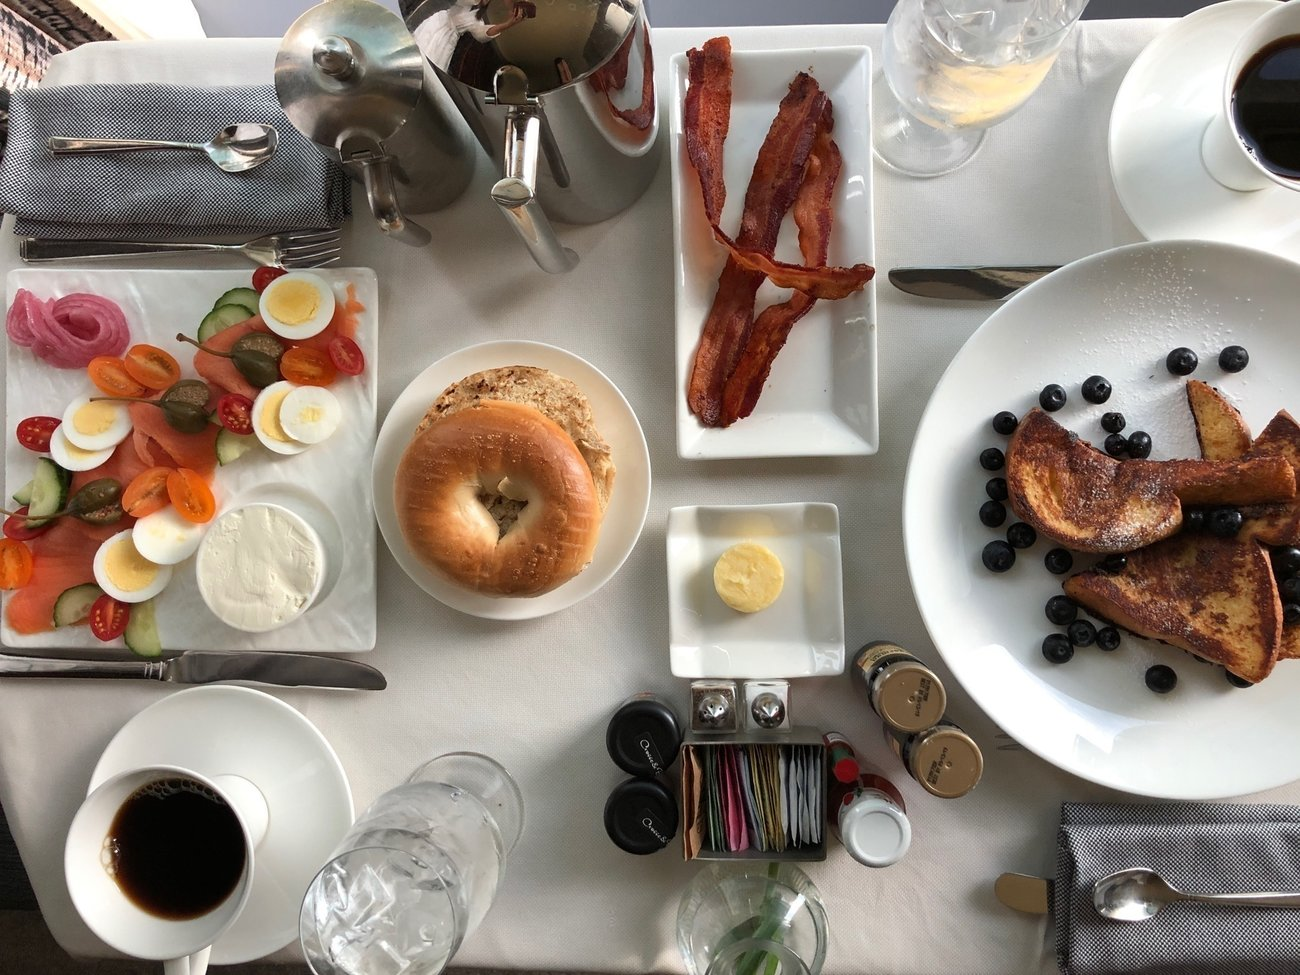 Photo tour: How to eat and drink your way through the Ritz in 24 hours